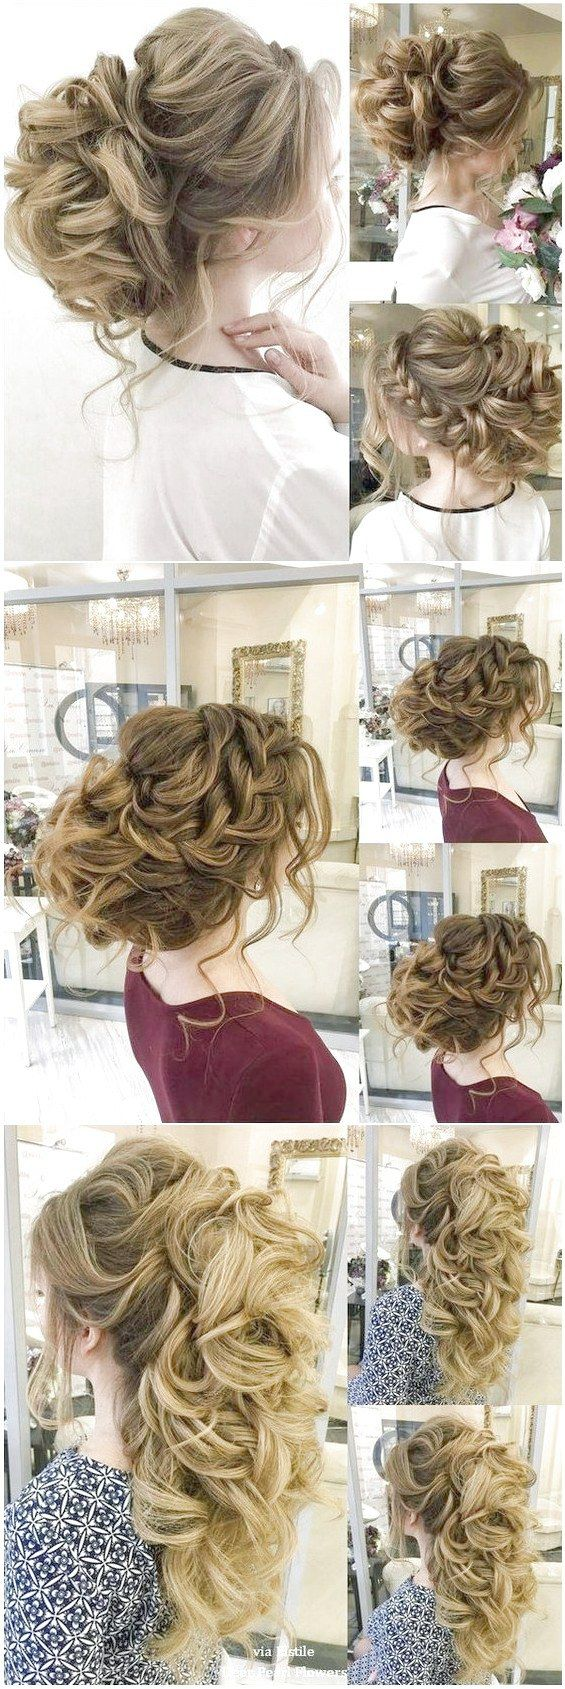 Long Hairstyles. Seeking out some inspiration for lengthy locks. The very best and simplest hair-styles, haircuts, and colours for girls with very lon...